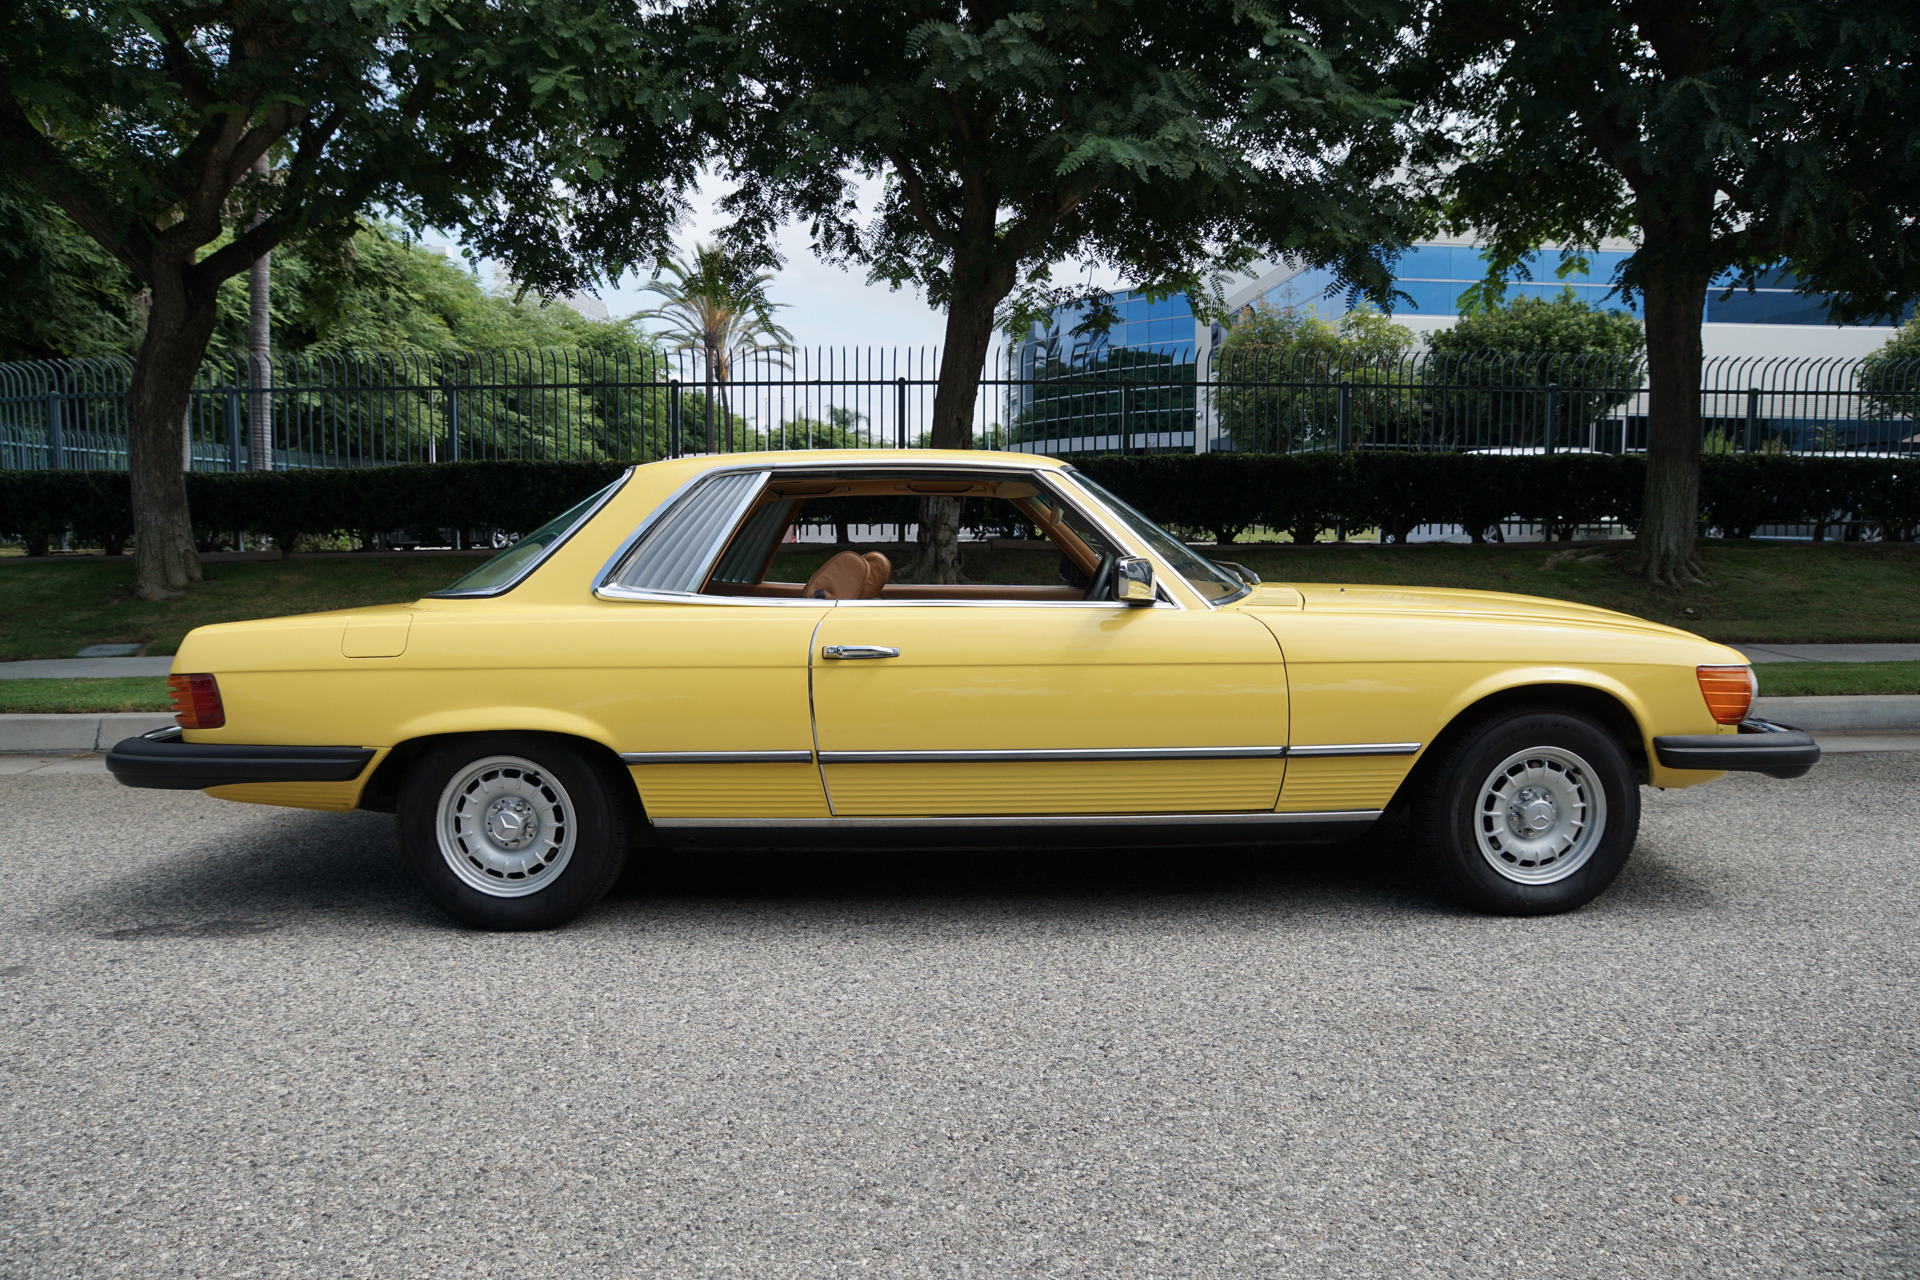 1977 mercedes benz 450slc stock 358 for sale near for Mercedes benz in torrance